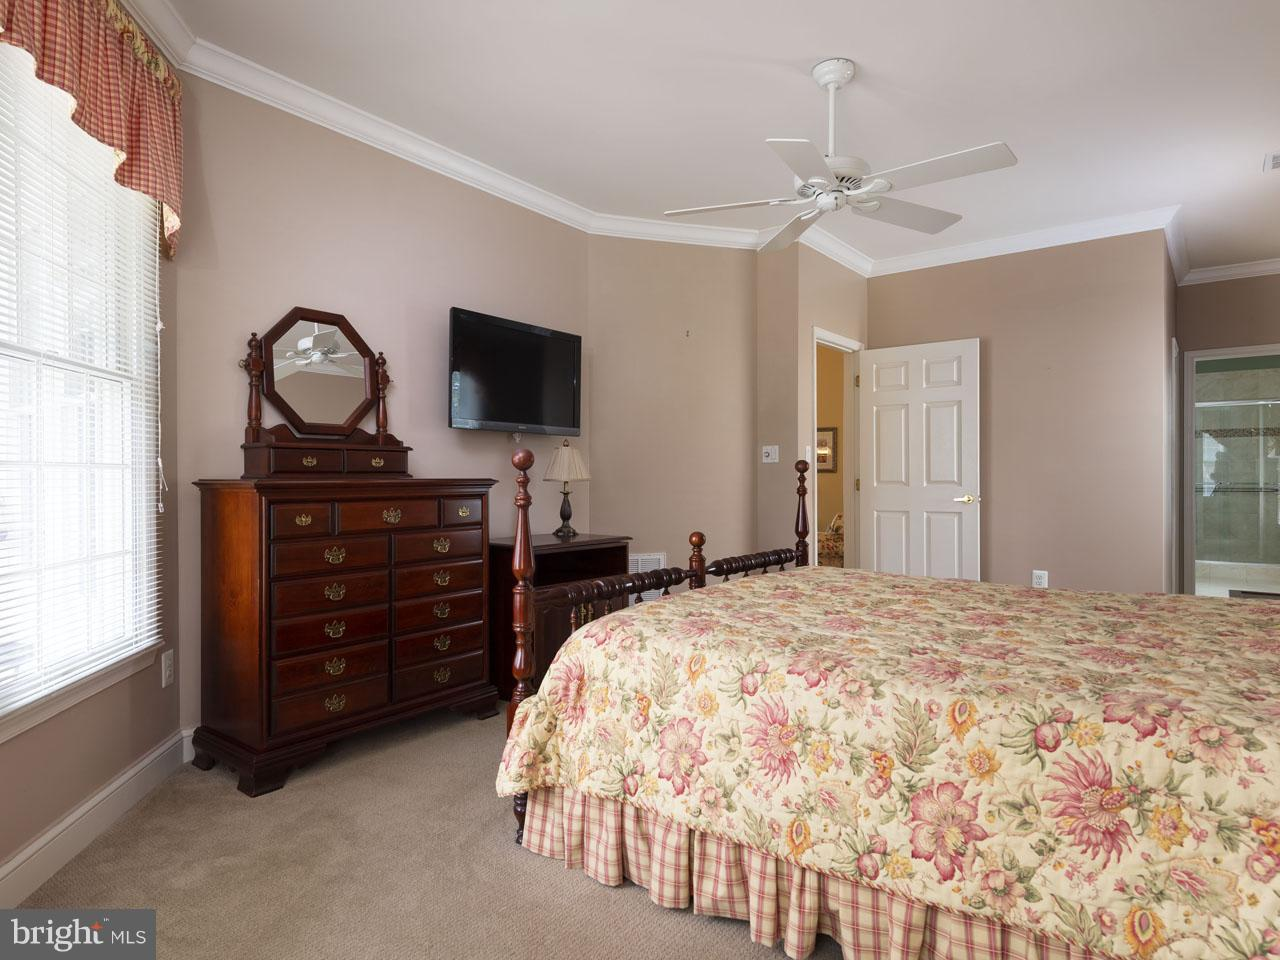 1005040466-300638082550-2021-07-22-06-45-08        Gainesville Delaware Real Estate For Sale   MLS# 1005040466  - Best of Northern Virginia